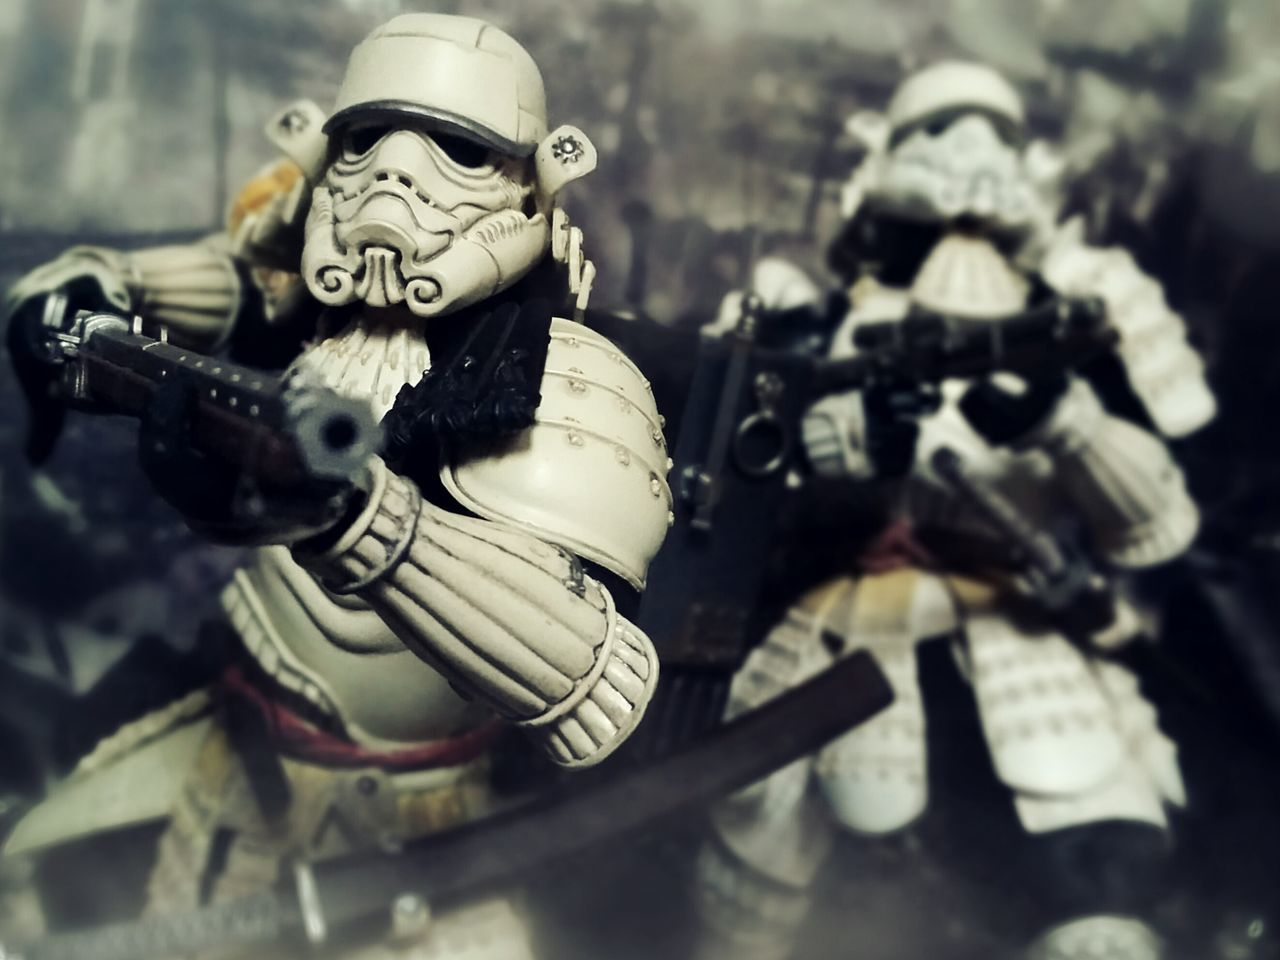 Heavy Artillery Action Figures BANDAI Samurai Toys Toy Photography Movie Realization Teppo Ashigaru Sandtrooper Ashigaru Stormtrooper Star Wars War